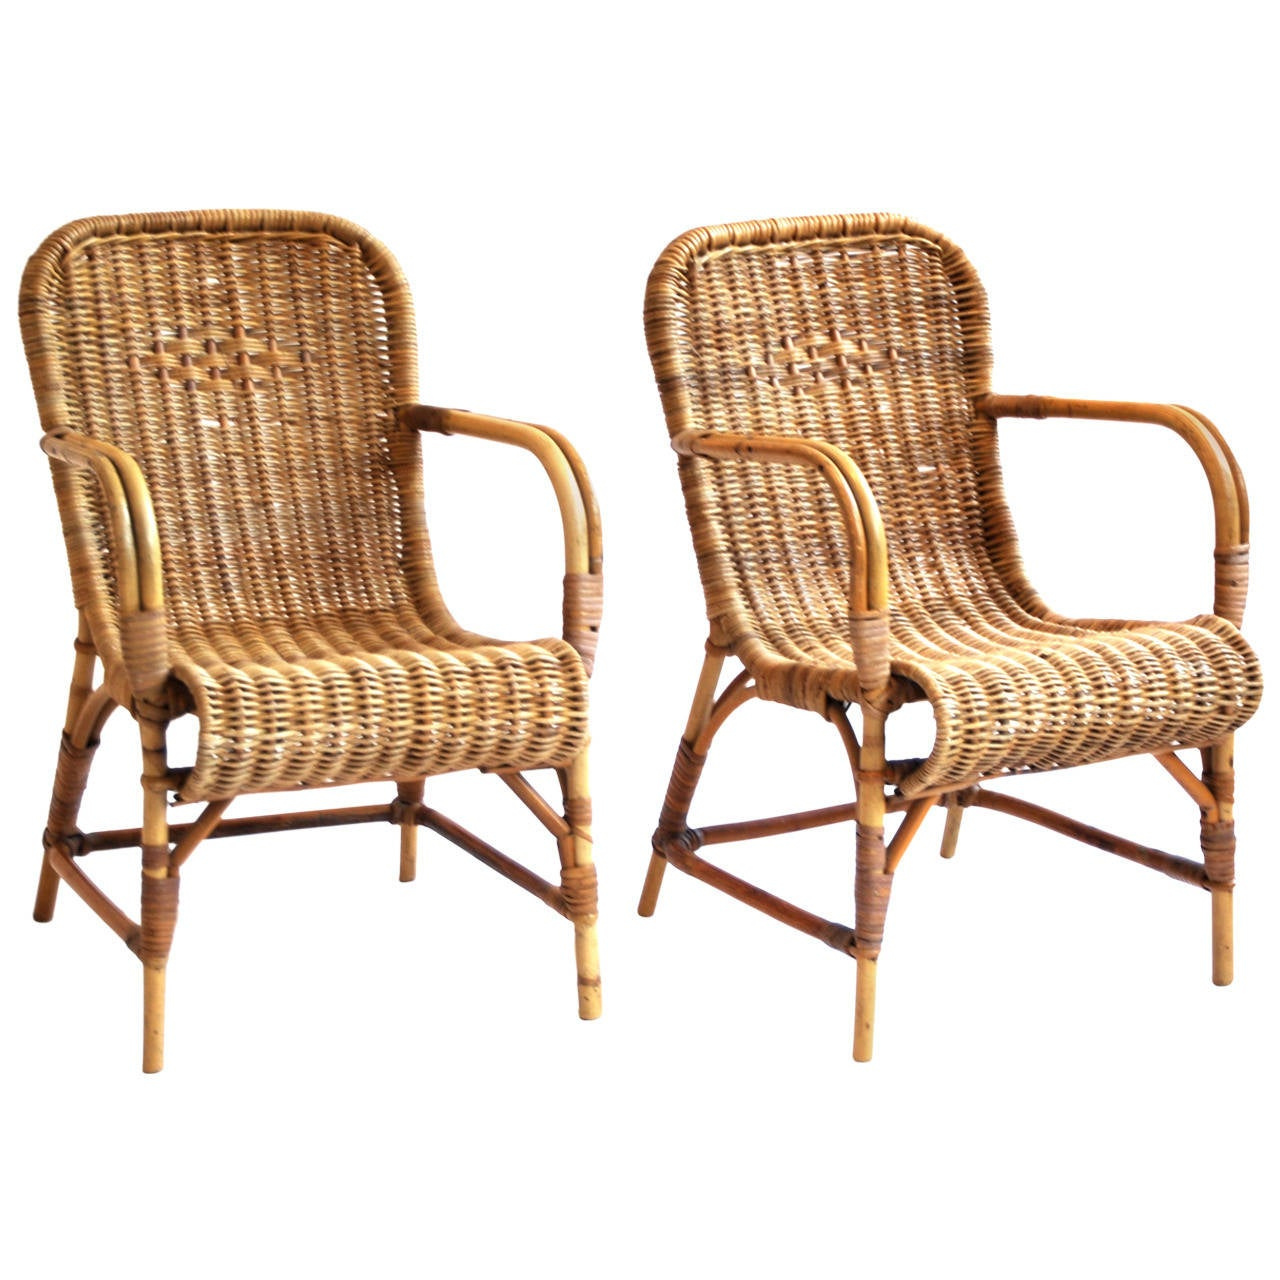 childs rattan chair vibrating cushion rohe children 39s easy at 1stdibs